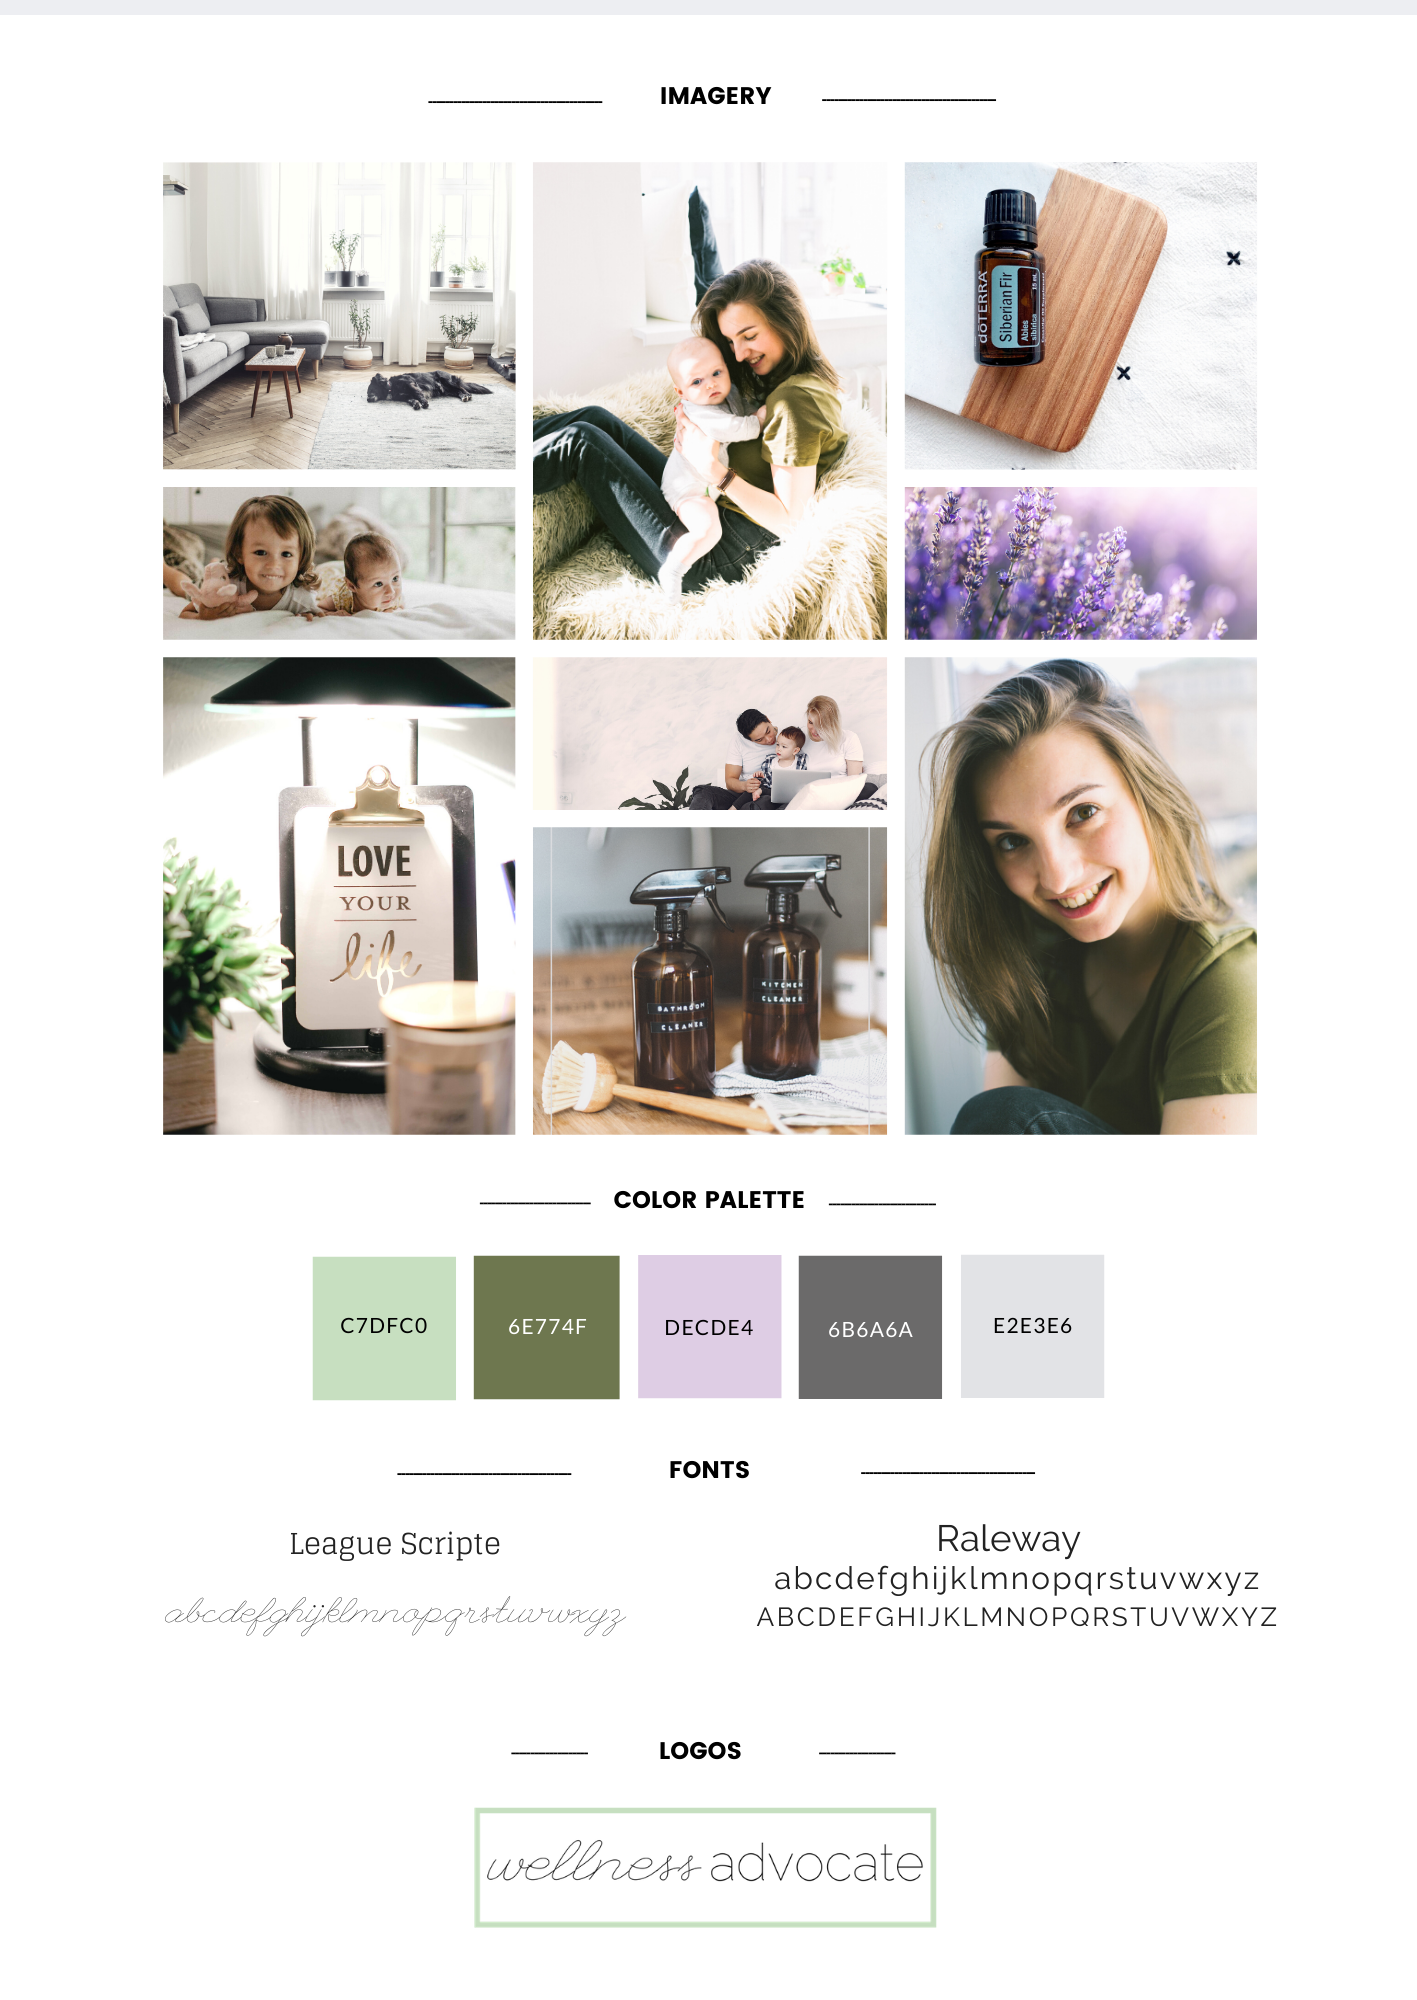 A brand board for an online entrepreneur, incorporating the basic visual aspects of their brand. This includes the images or graphics, colors palette, fonts, and logo.